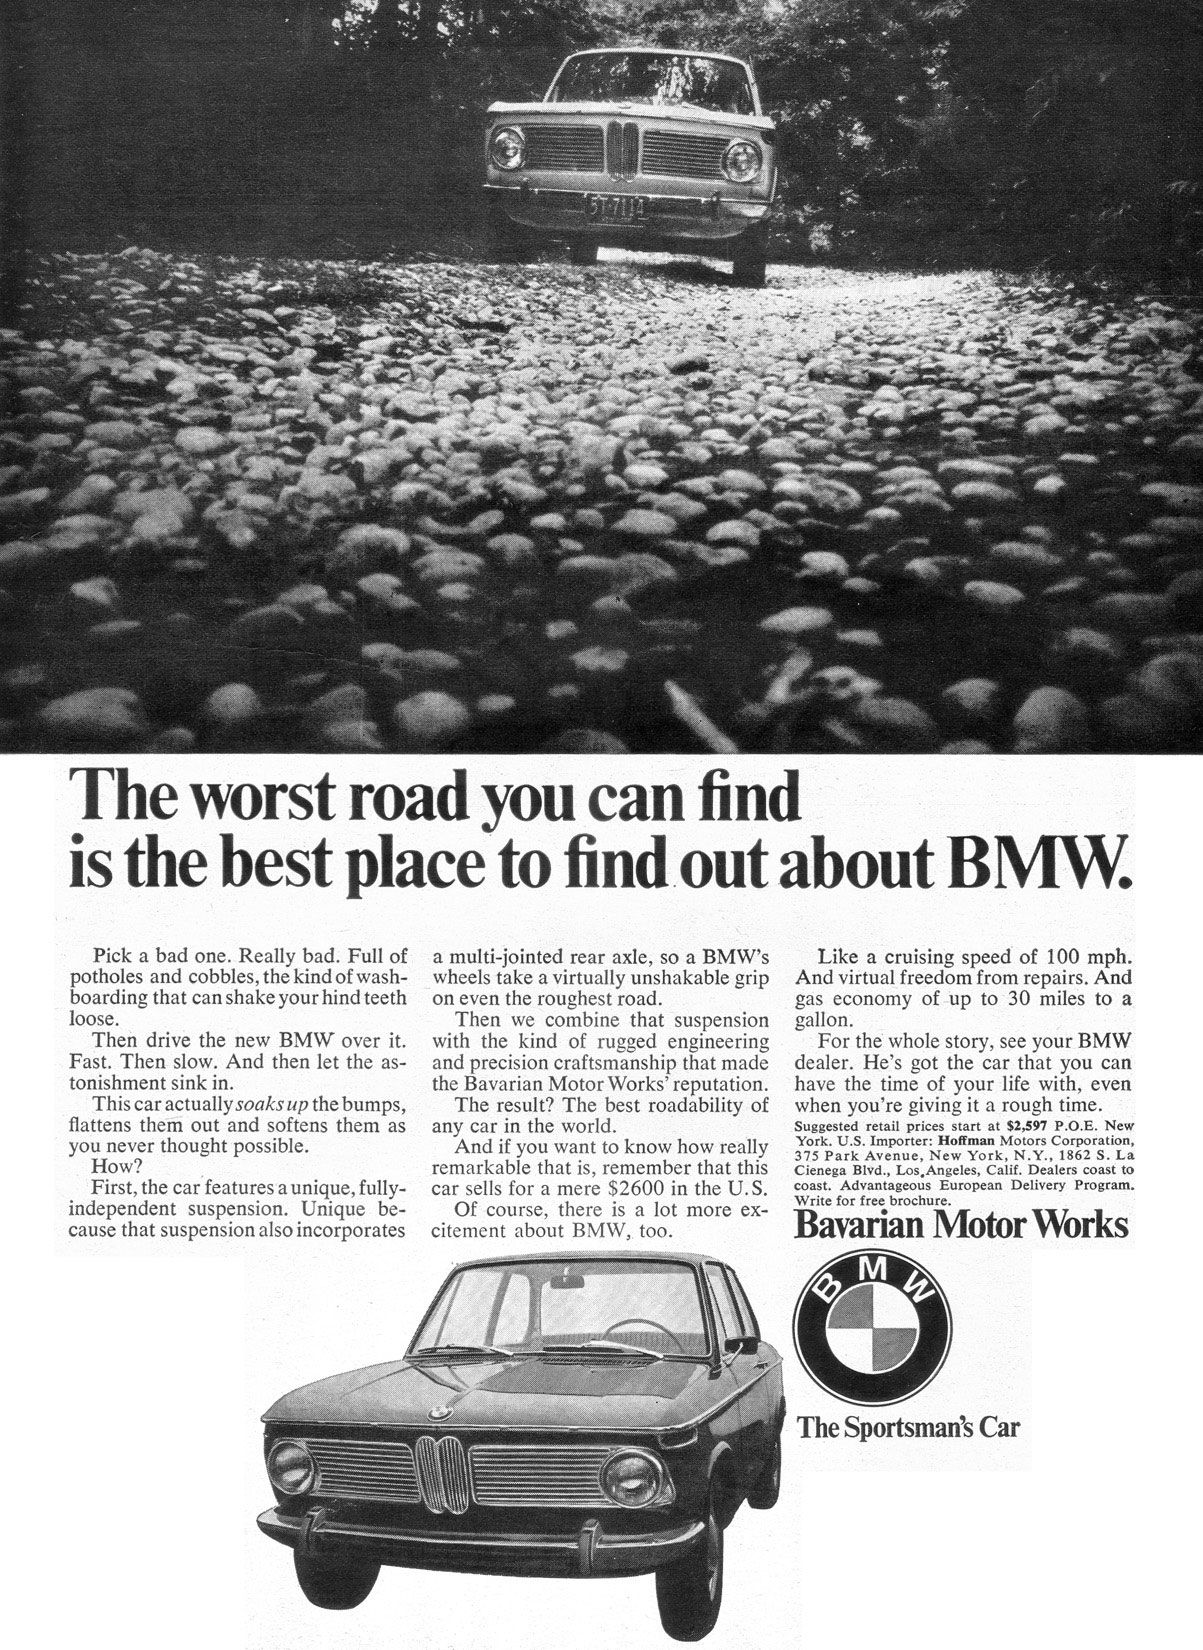 The worst road you can find is the best place to find out about BMW. Pick a bad one. Really bad. Full of potholes and cobbles, the kind of wash-boarding that can shake your hind teeth loose. Then drive the new BMW over it. Fast. Then slow. And then let the as-tonishment sink in. This car actually soaks up the bumps, flattens them out and softens them as you never thought possible. How? First, the car features a unique, fully-independent suspension. Unique be-cause that suspension also incorporates a multi-jointed rear axle, so a BMW's wheels take a virtually unshakable grip on even the roughest road. Then we combine that suspension with the kind of rugged engineering and precision craftsmanship that made the Bavarian Motor Works' reputation. The result? The best roadability of any car in the world. And if you want to know how really remarkable that is, remember that this car sells for a mere $2600 in the U.S. Of course, there is a lot more ex-citement about BMW, too. Like a cruising speed of 100 mph. And virtual freedom from repairs. And gas economy of -up to 30 miles to a gallon. For the whole story, see your BMW dealer. He's got the car that you can have the time of your life with, even when you're giving it a rough time. Suggested retail prices start at $2,597 P.O.E. New York. U.S. Importer: Hoffman Motors Corporation, 375 Park Avenue, New York, N.Y., 1862 S. La Cienega Blvd., Los.Angeles, Calif. Dealers coast to coast. Advantageous European Delivery Program. Write for free brochure. Bavarian Motor Works The Sportsman's Car